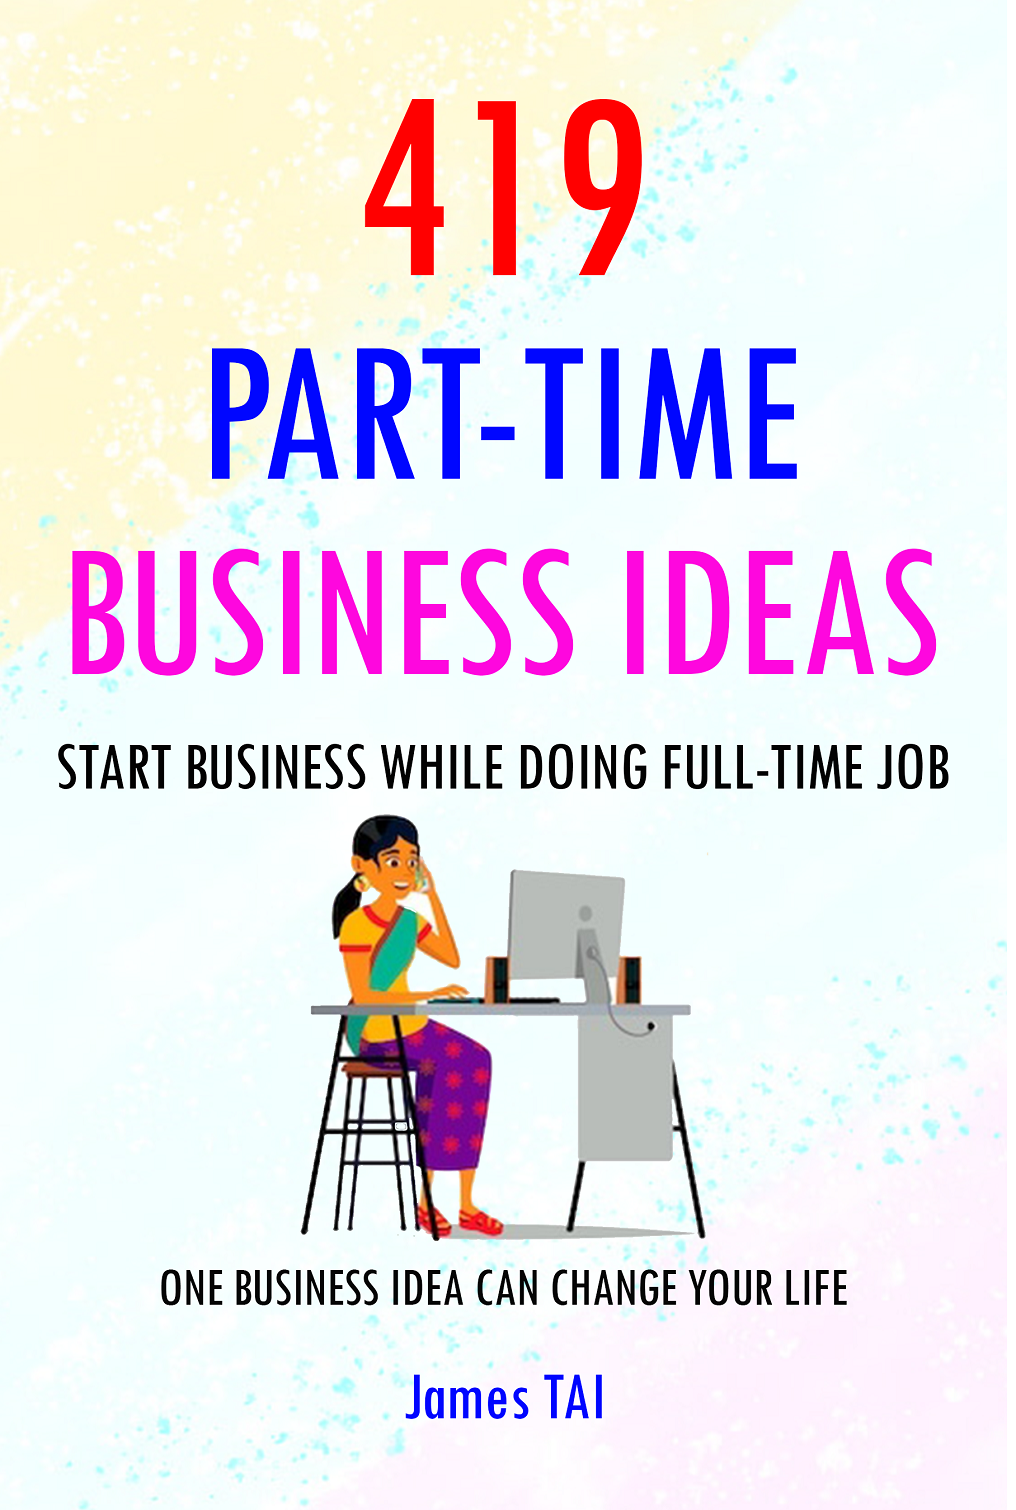 419 Part-Time Business Ideas: Start Business While Doing Full-Time Job